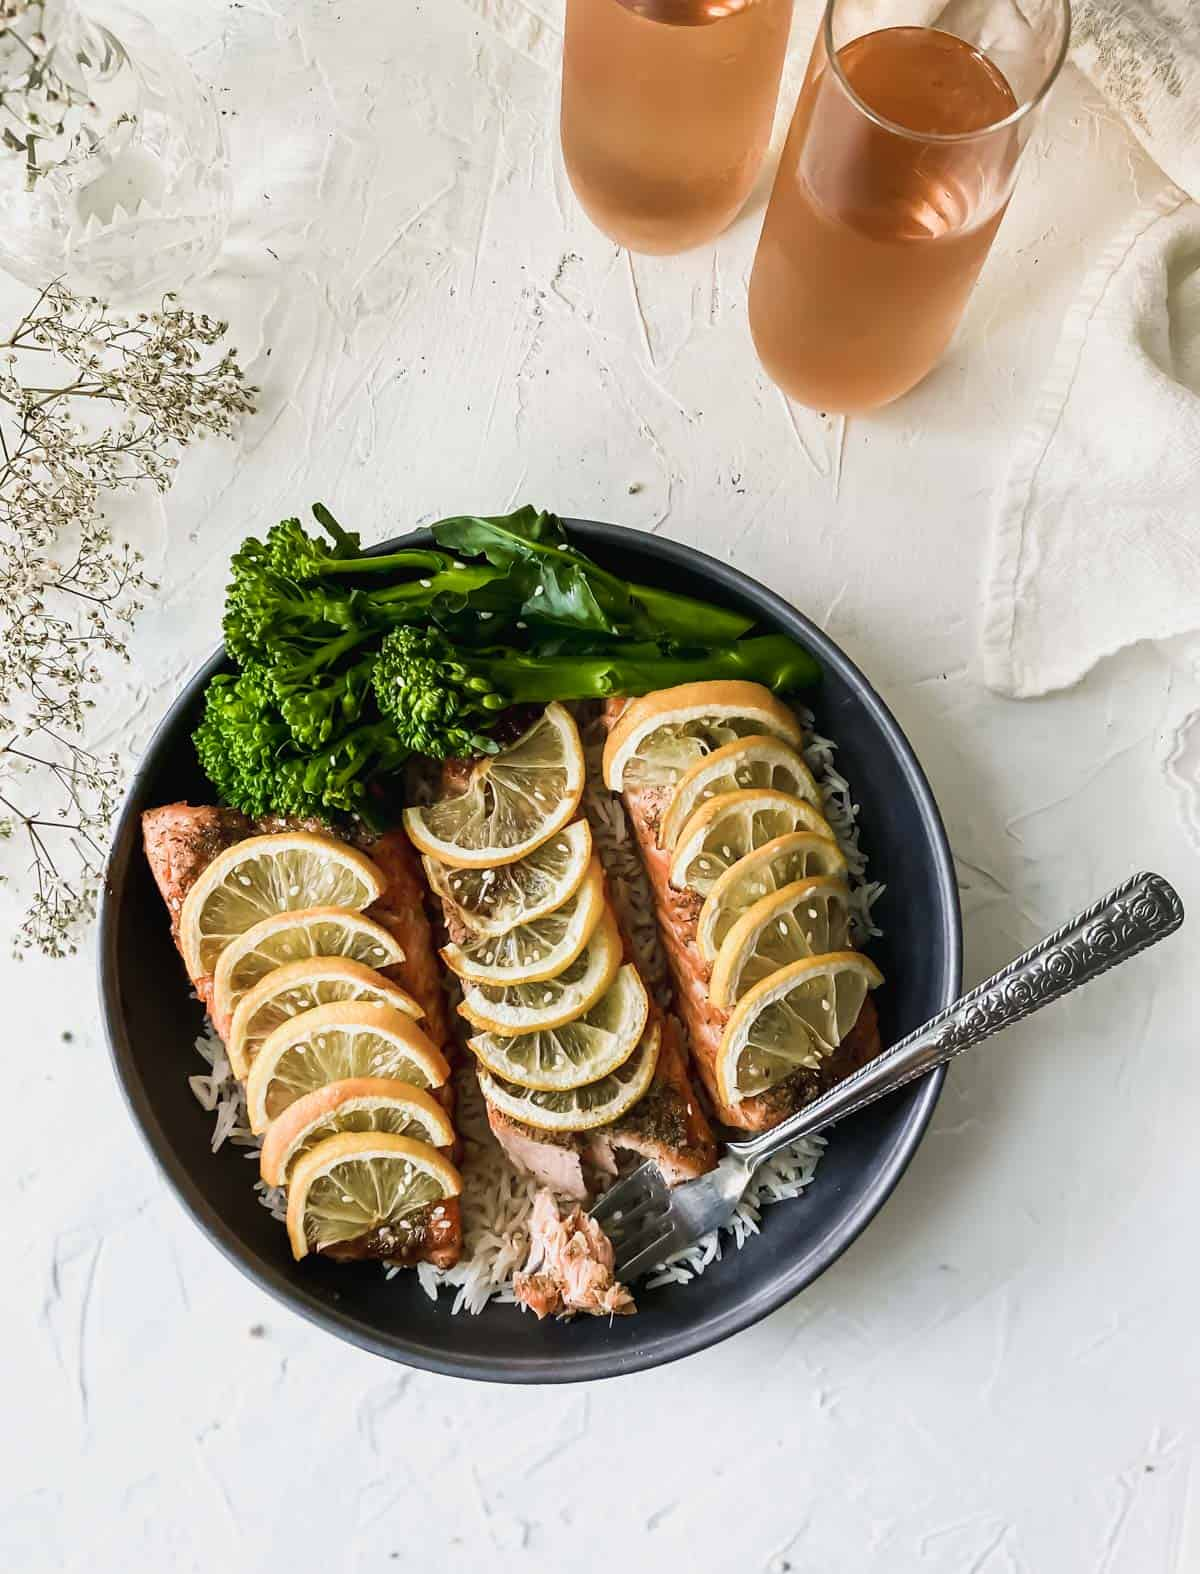 baked teriyaki salmon in a black bowl with 2 glasses of rosé wine next to it.